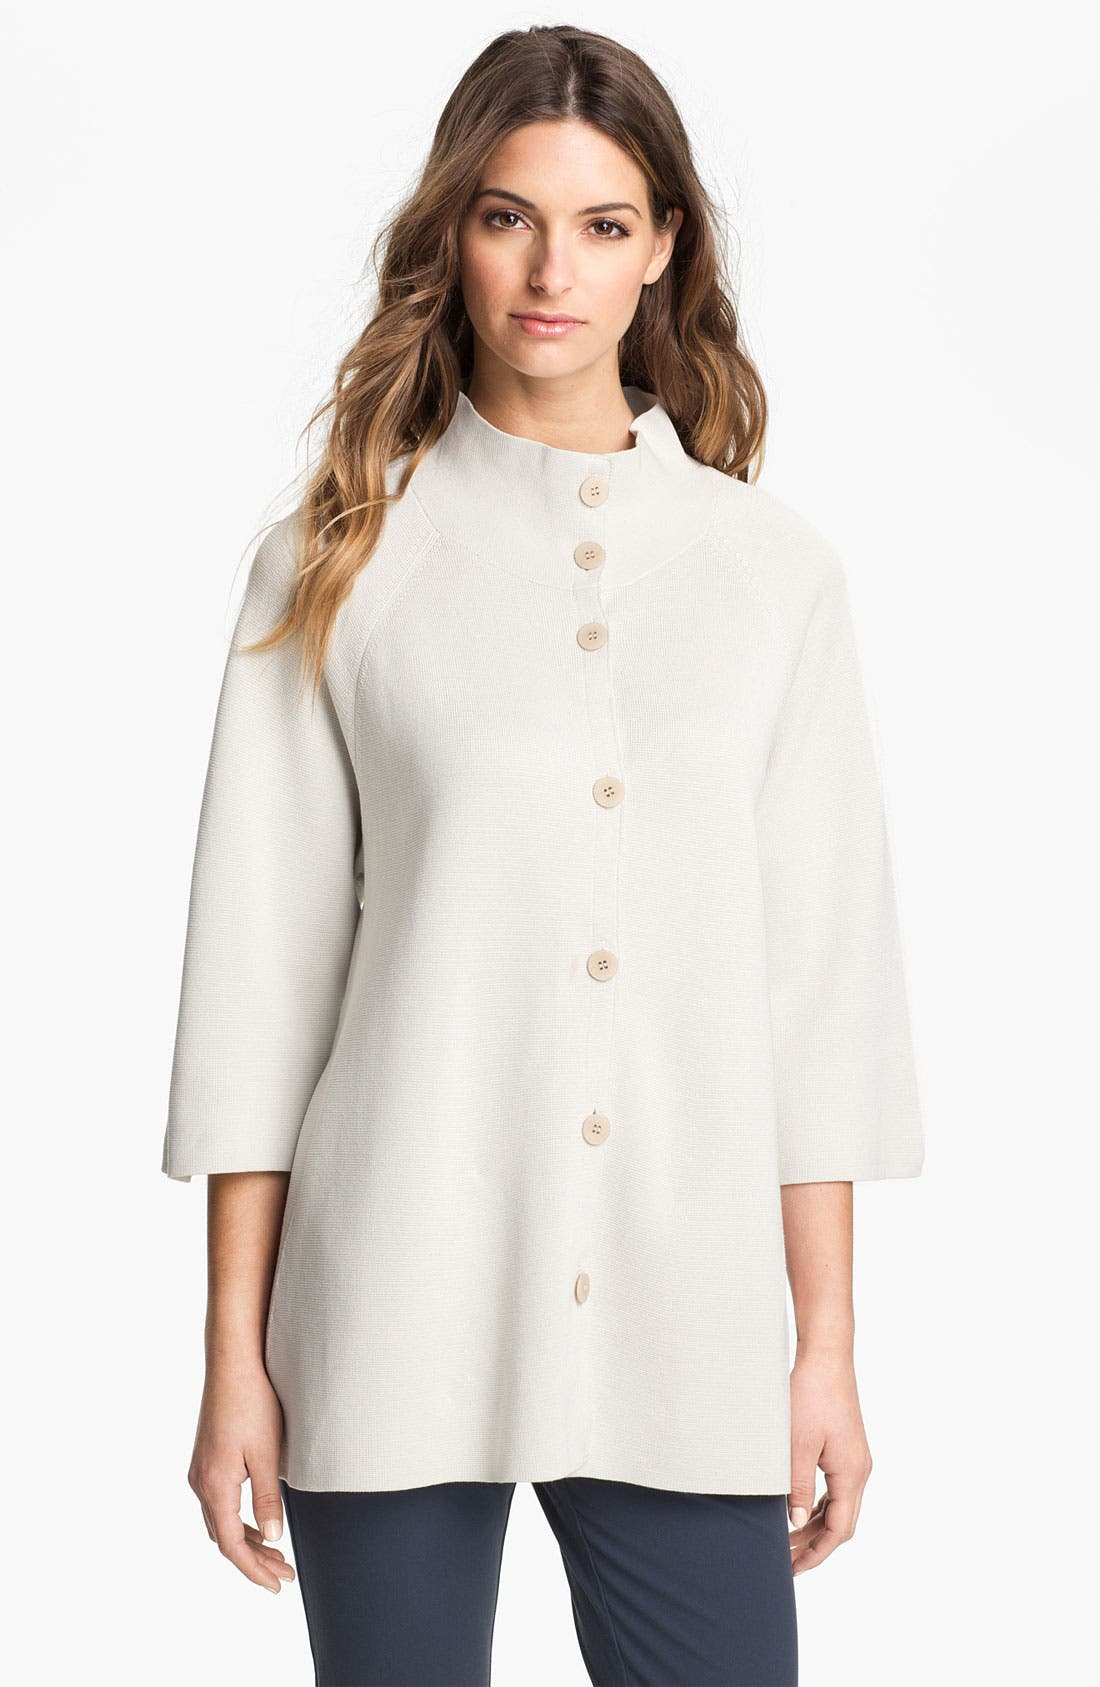 Main Image - Eileen Fisher Silk & Cotton Interlock Knit Jacket (Petite)